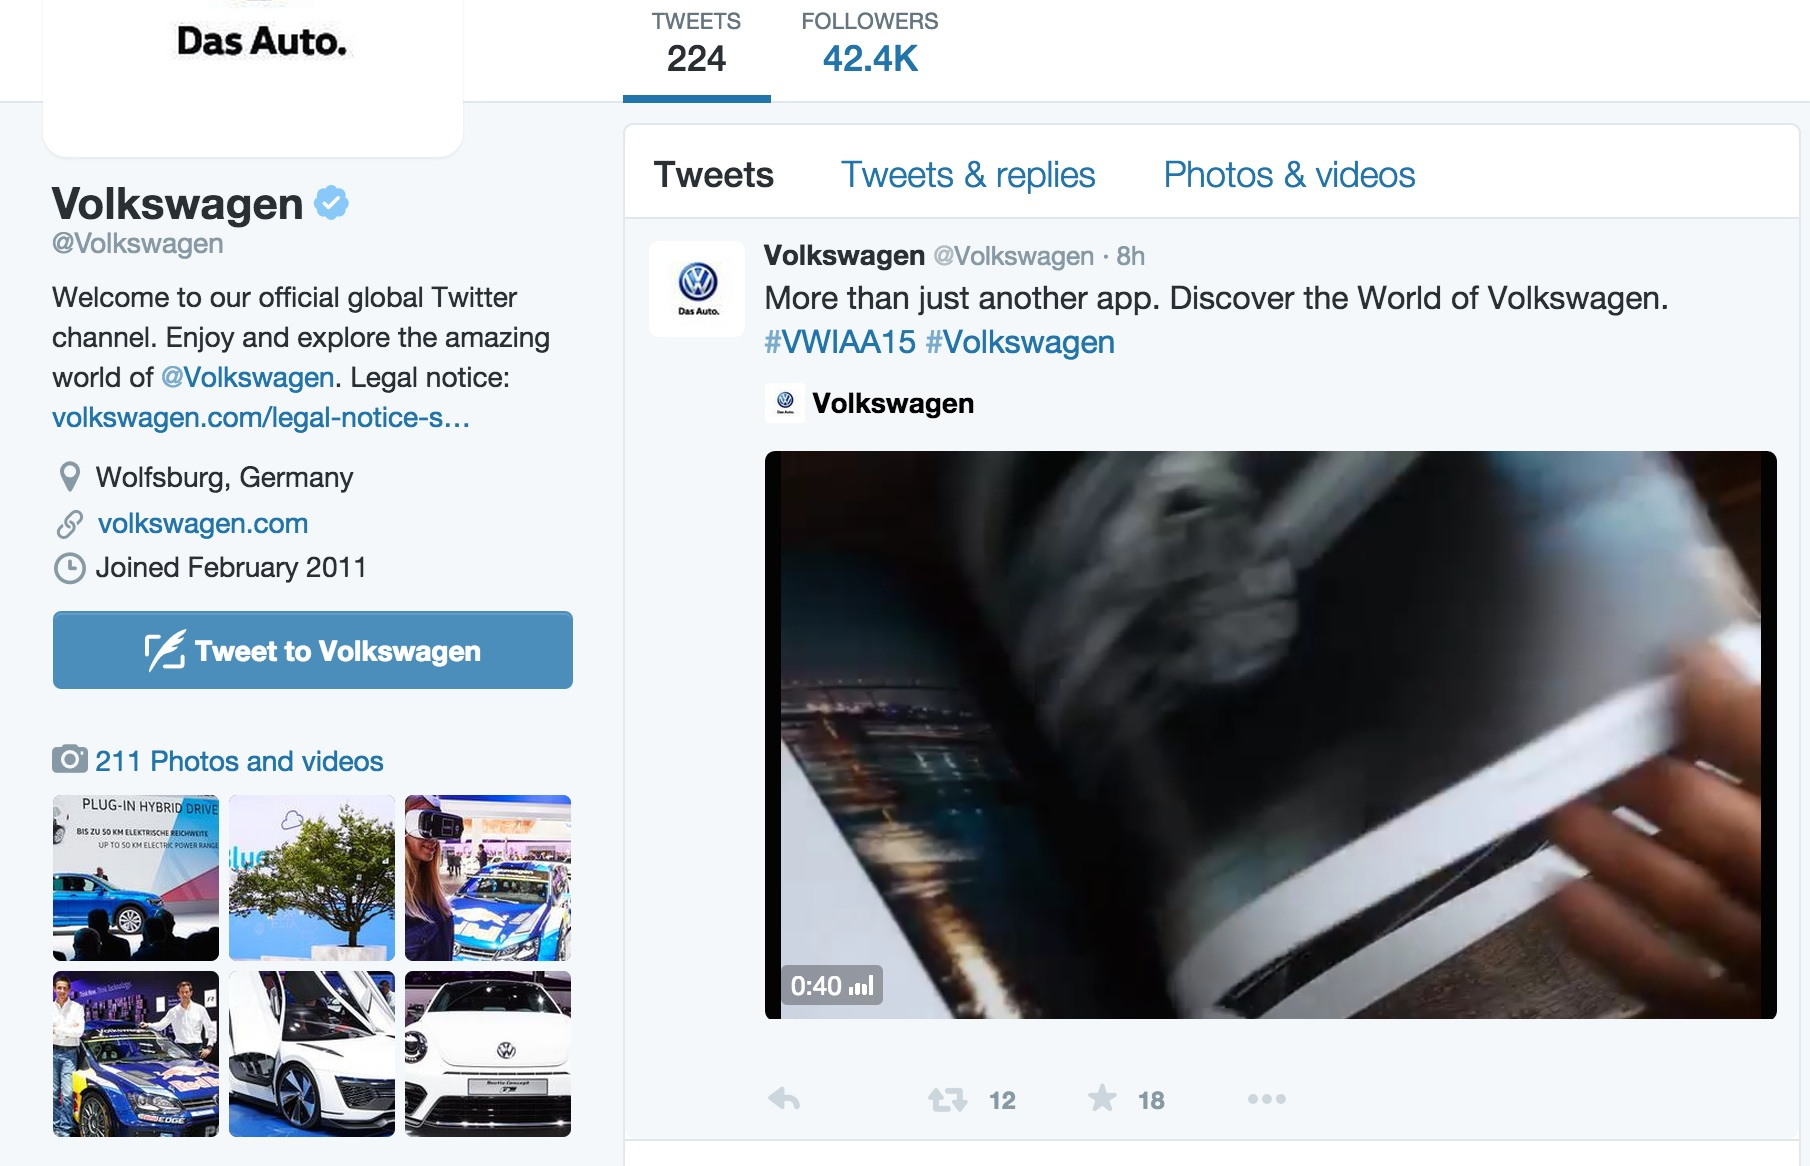 Looks like the VW Twitter account is taking the time-honored 'head in the sand' approach.